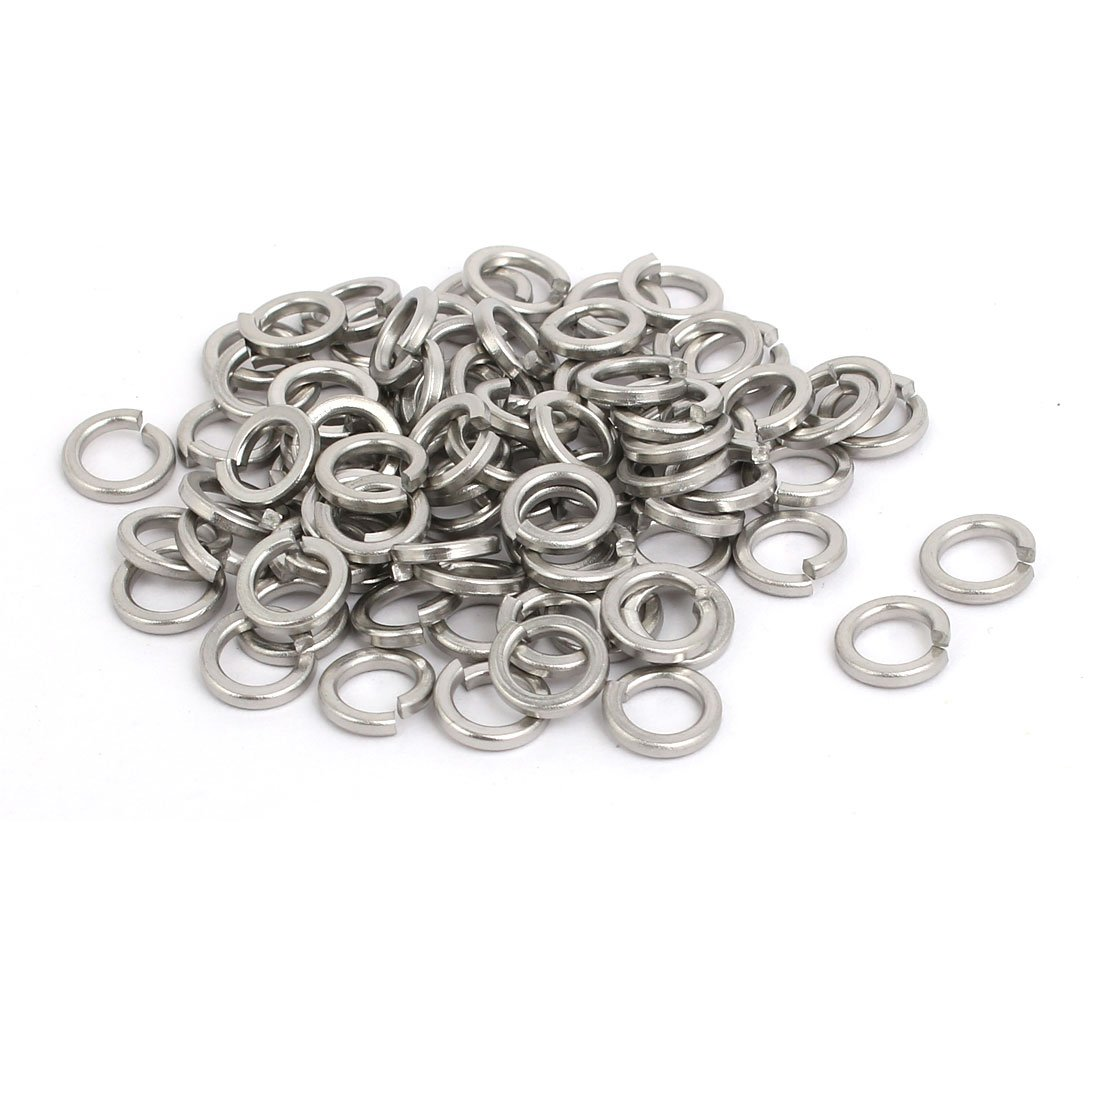 uxcell M5 Inner Diameter 304 Stainless Steel Split Lock Spring Washer Gasket 80pcs